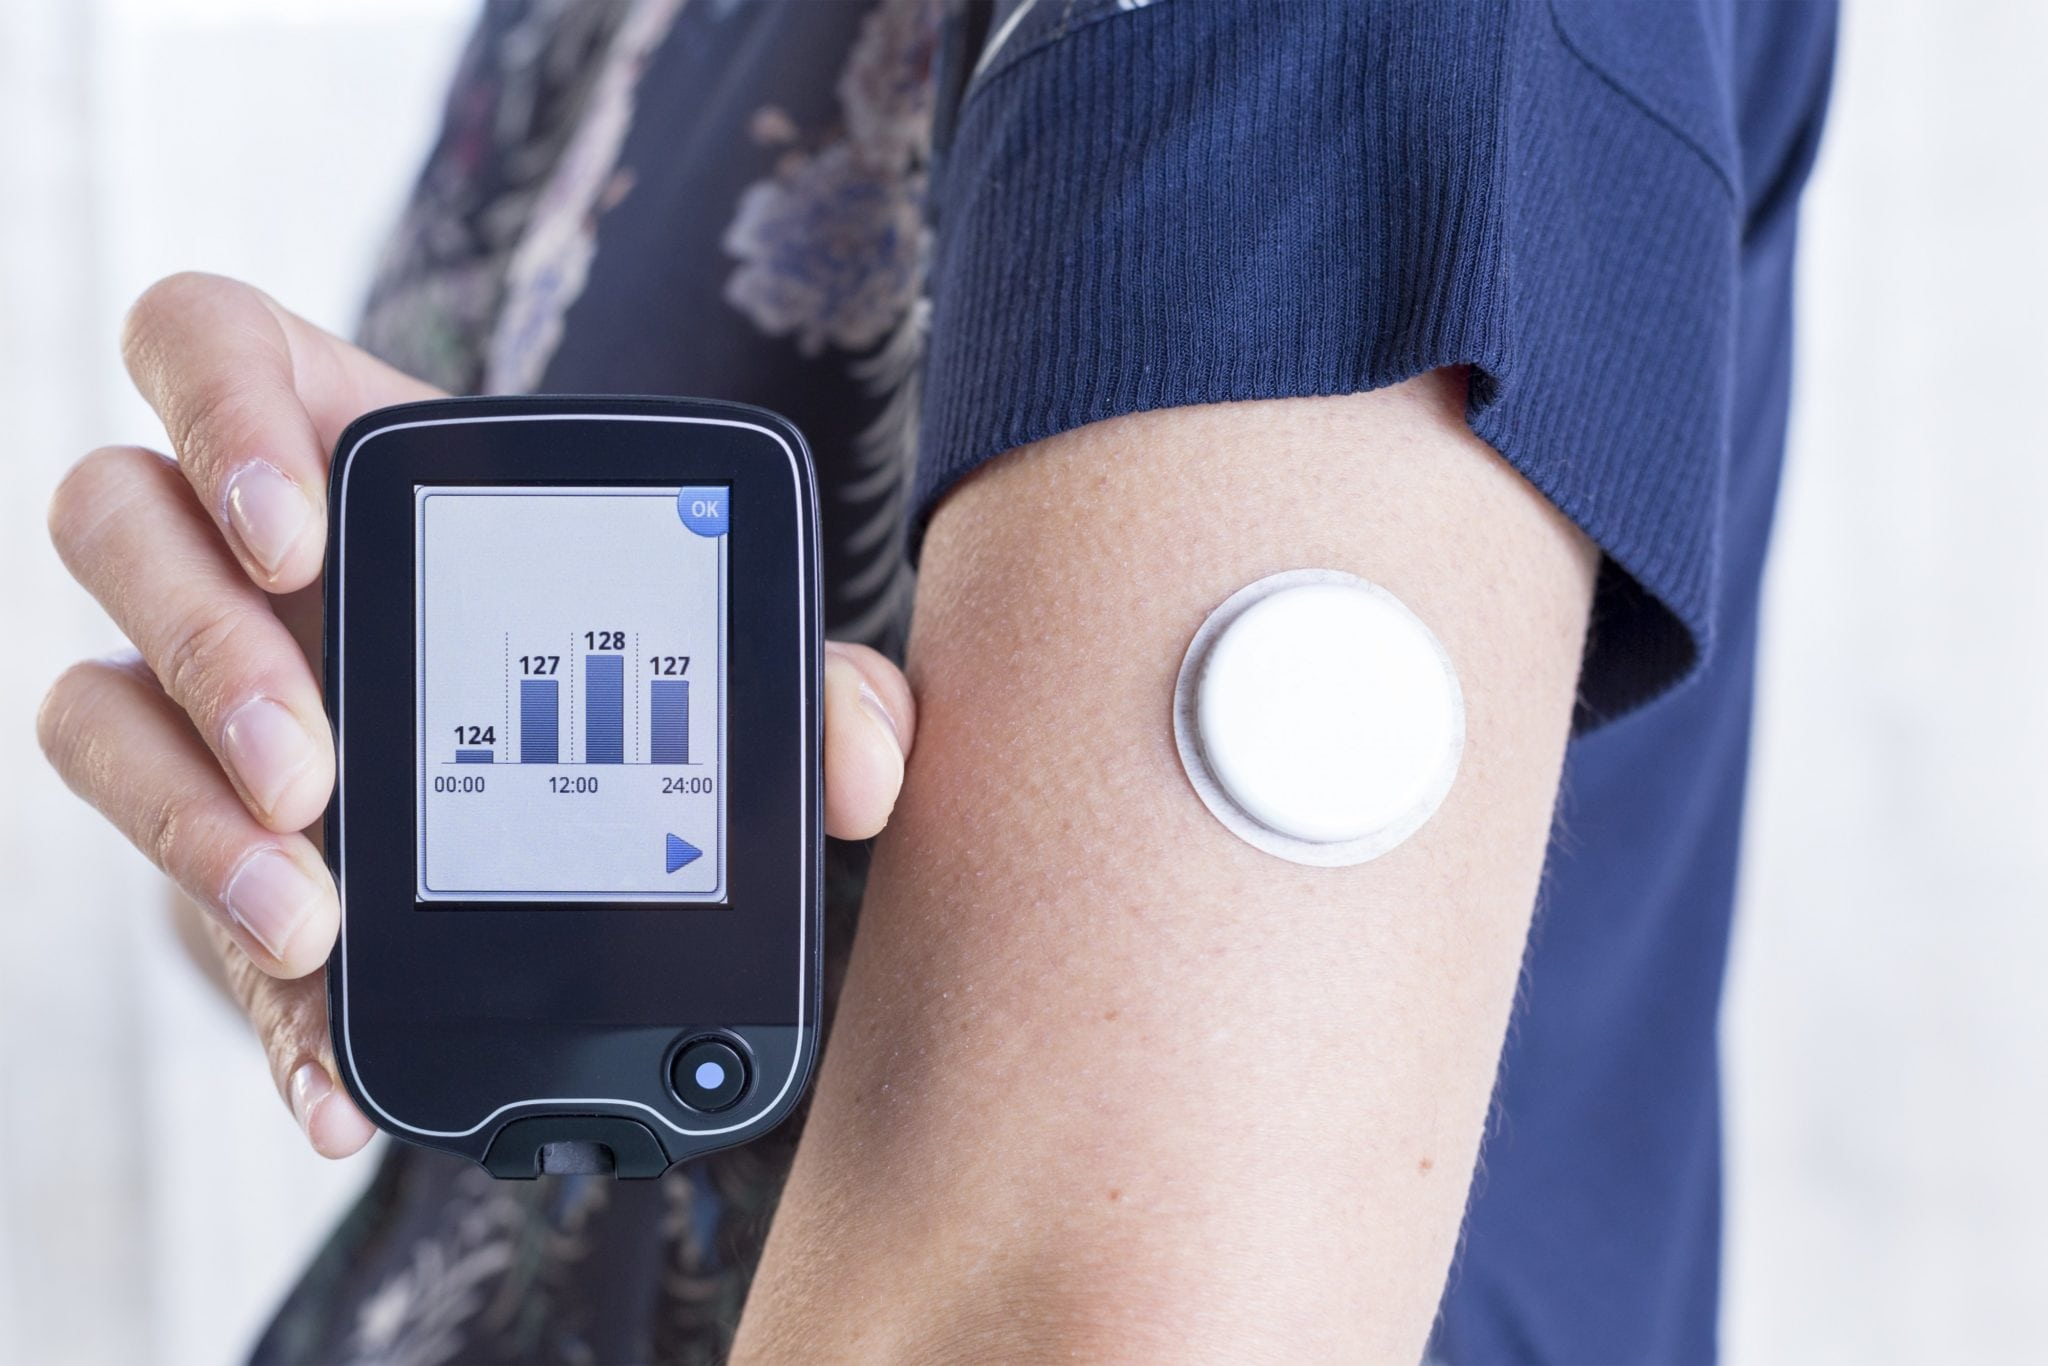 IoT in a Glucose Monitoring Device - IoT Applications - Edureka